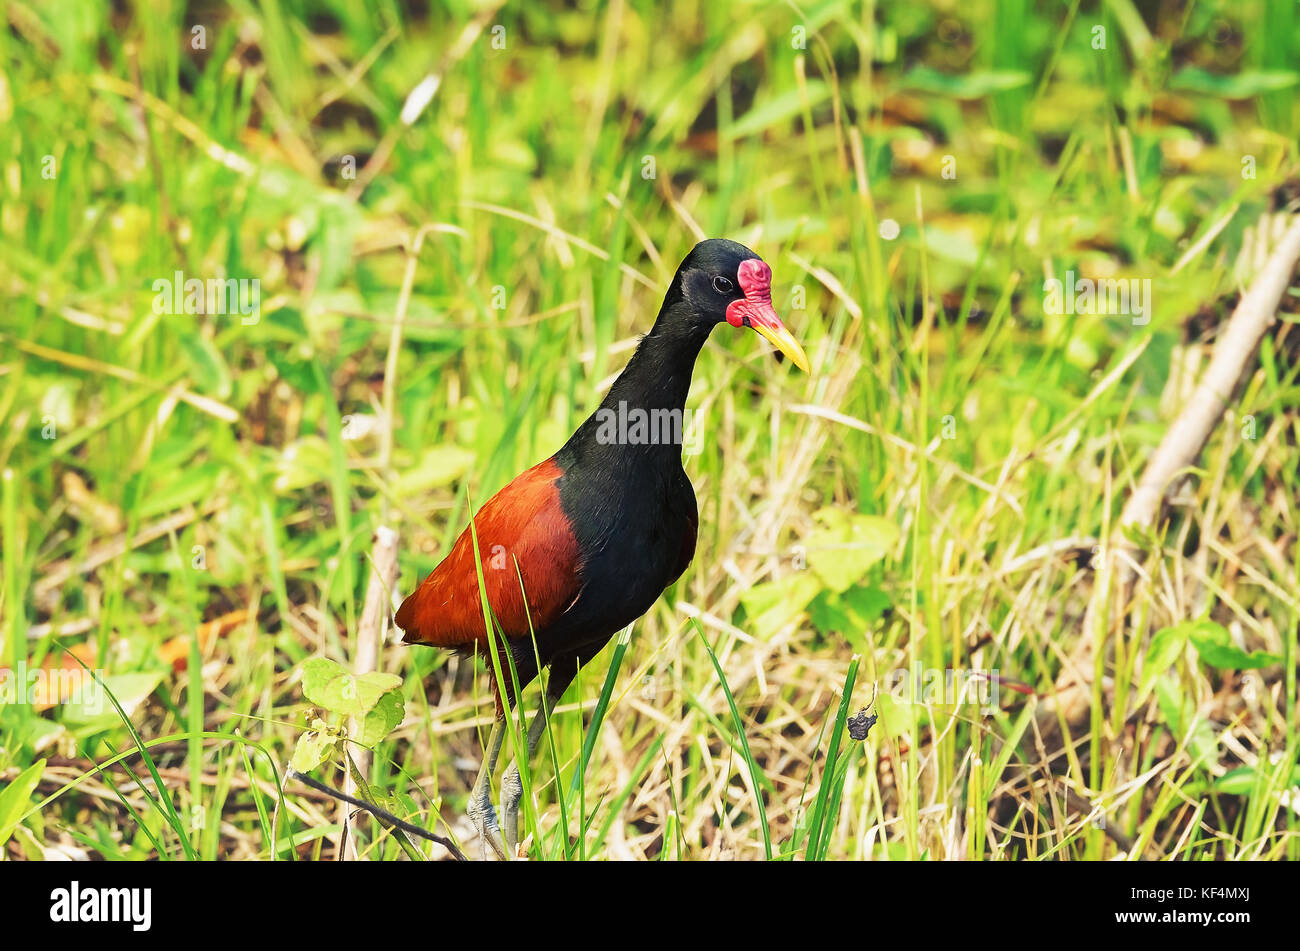 Black Bird With Orange Red On Wings 2